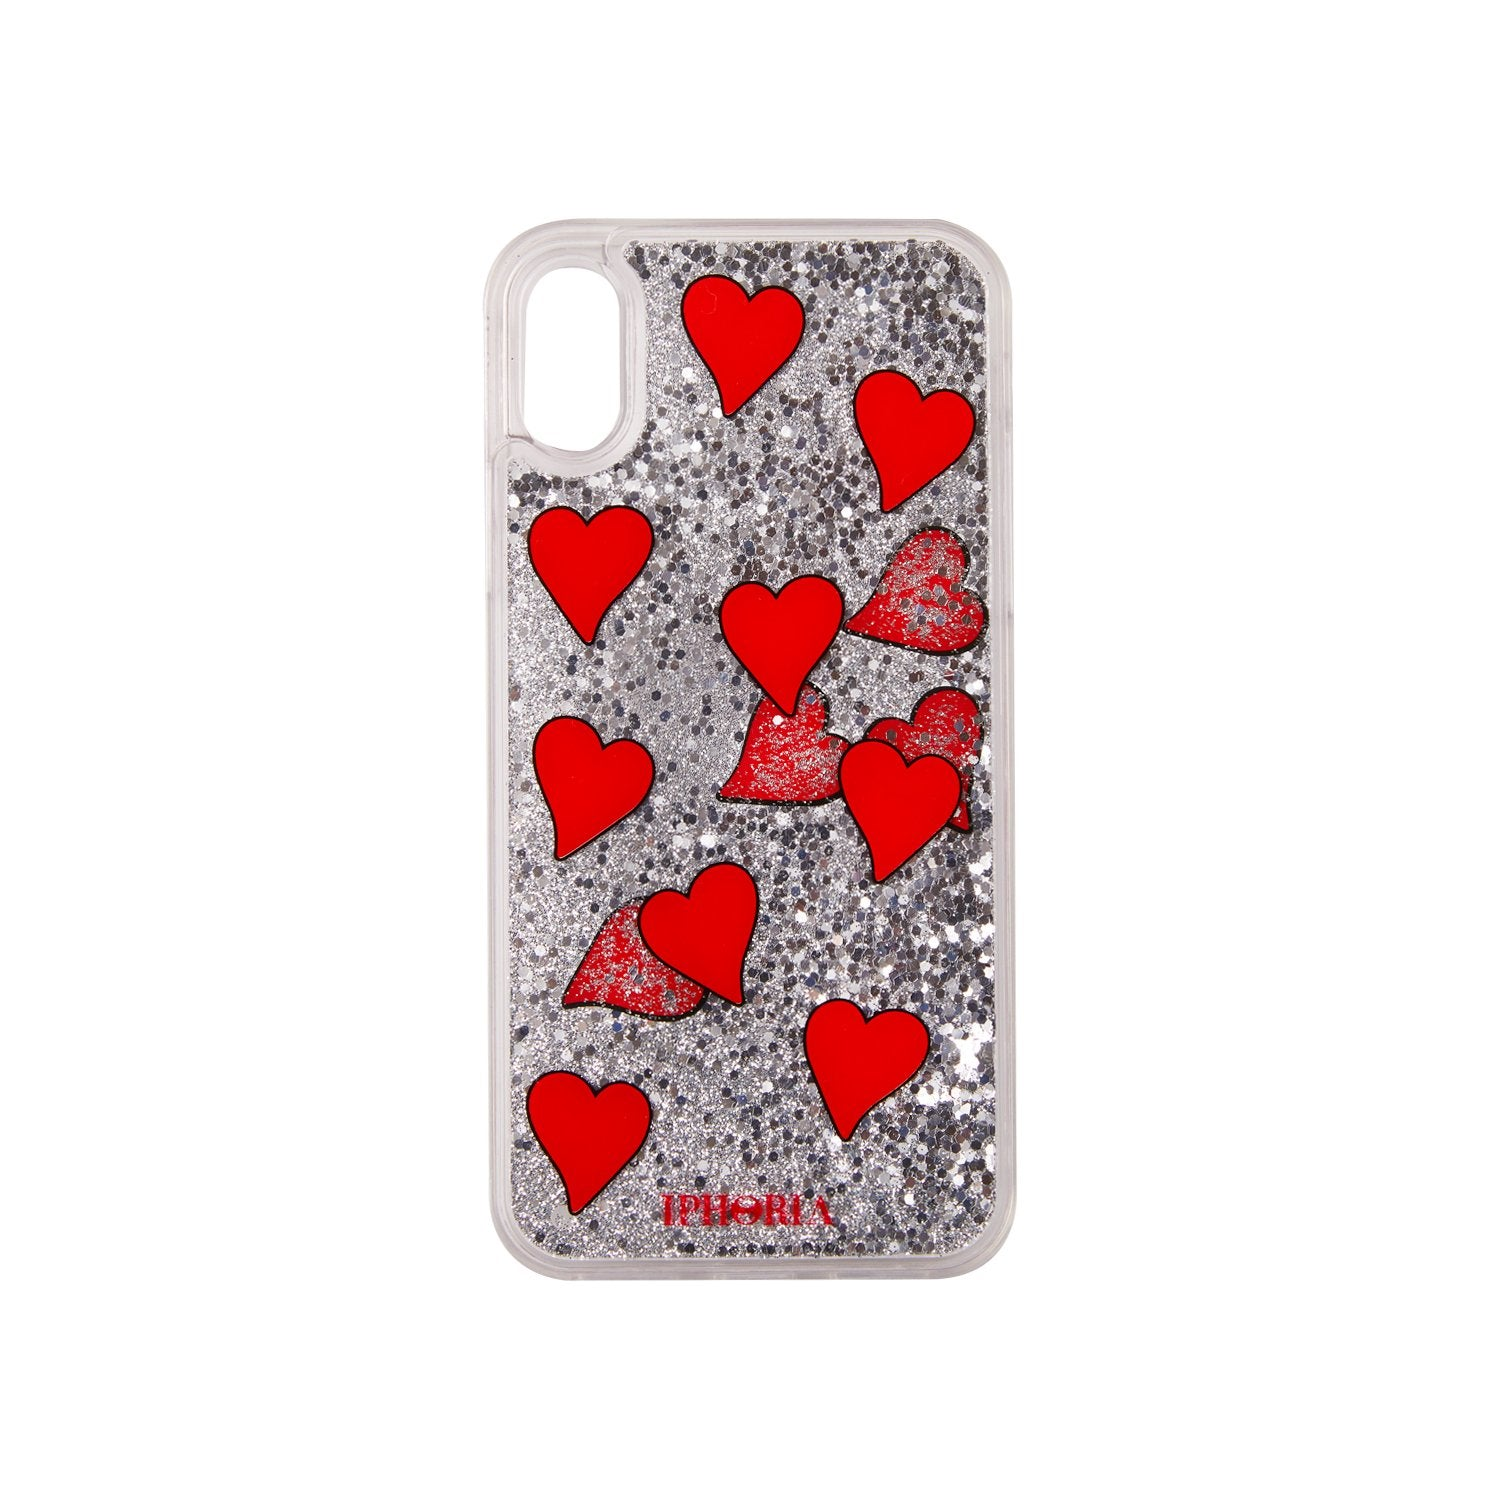 IPHORIA(アイフォリア) iPhoneXS/X ケース Transparent with Flooting Red Hearts(リキッド コレクション)の商品画像